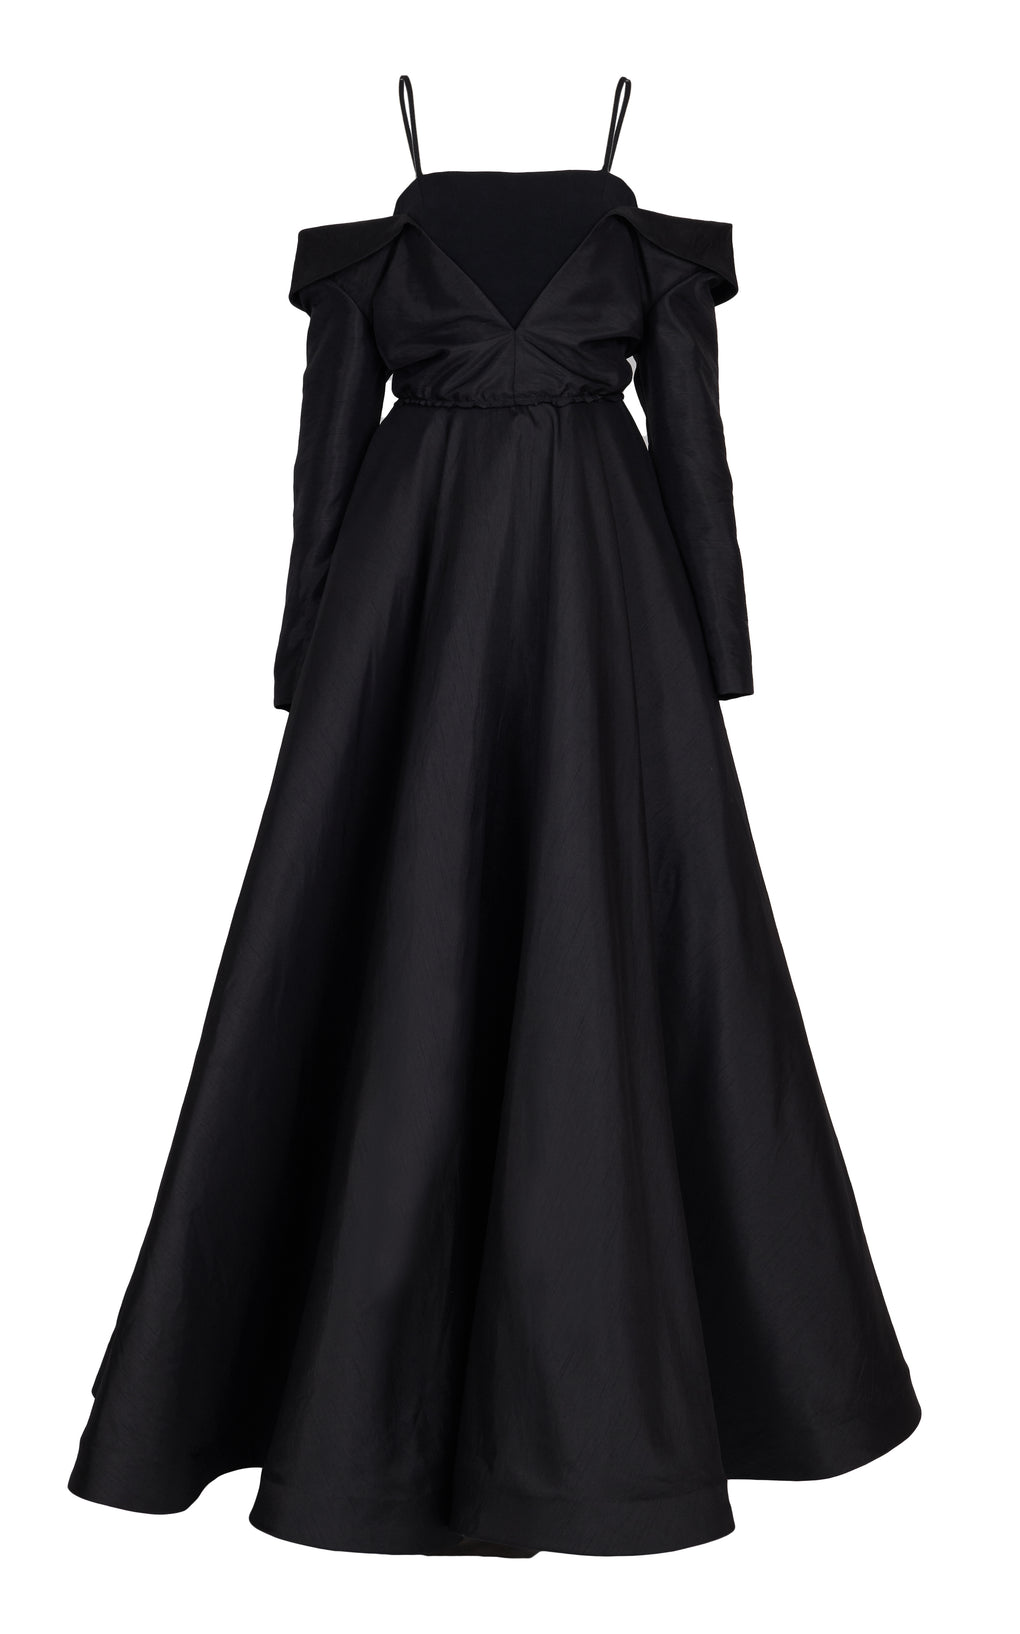 Black full ball gown